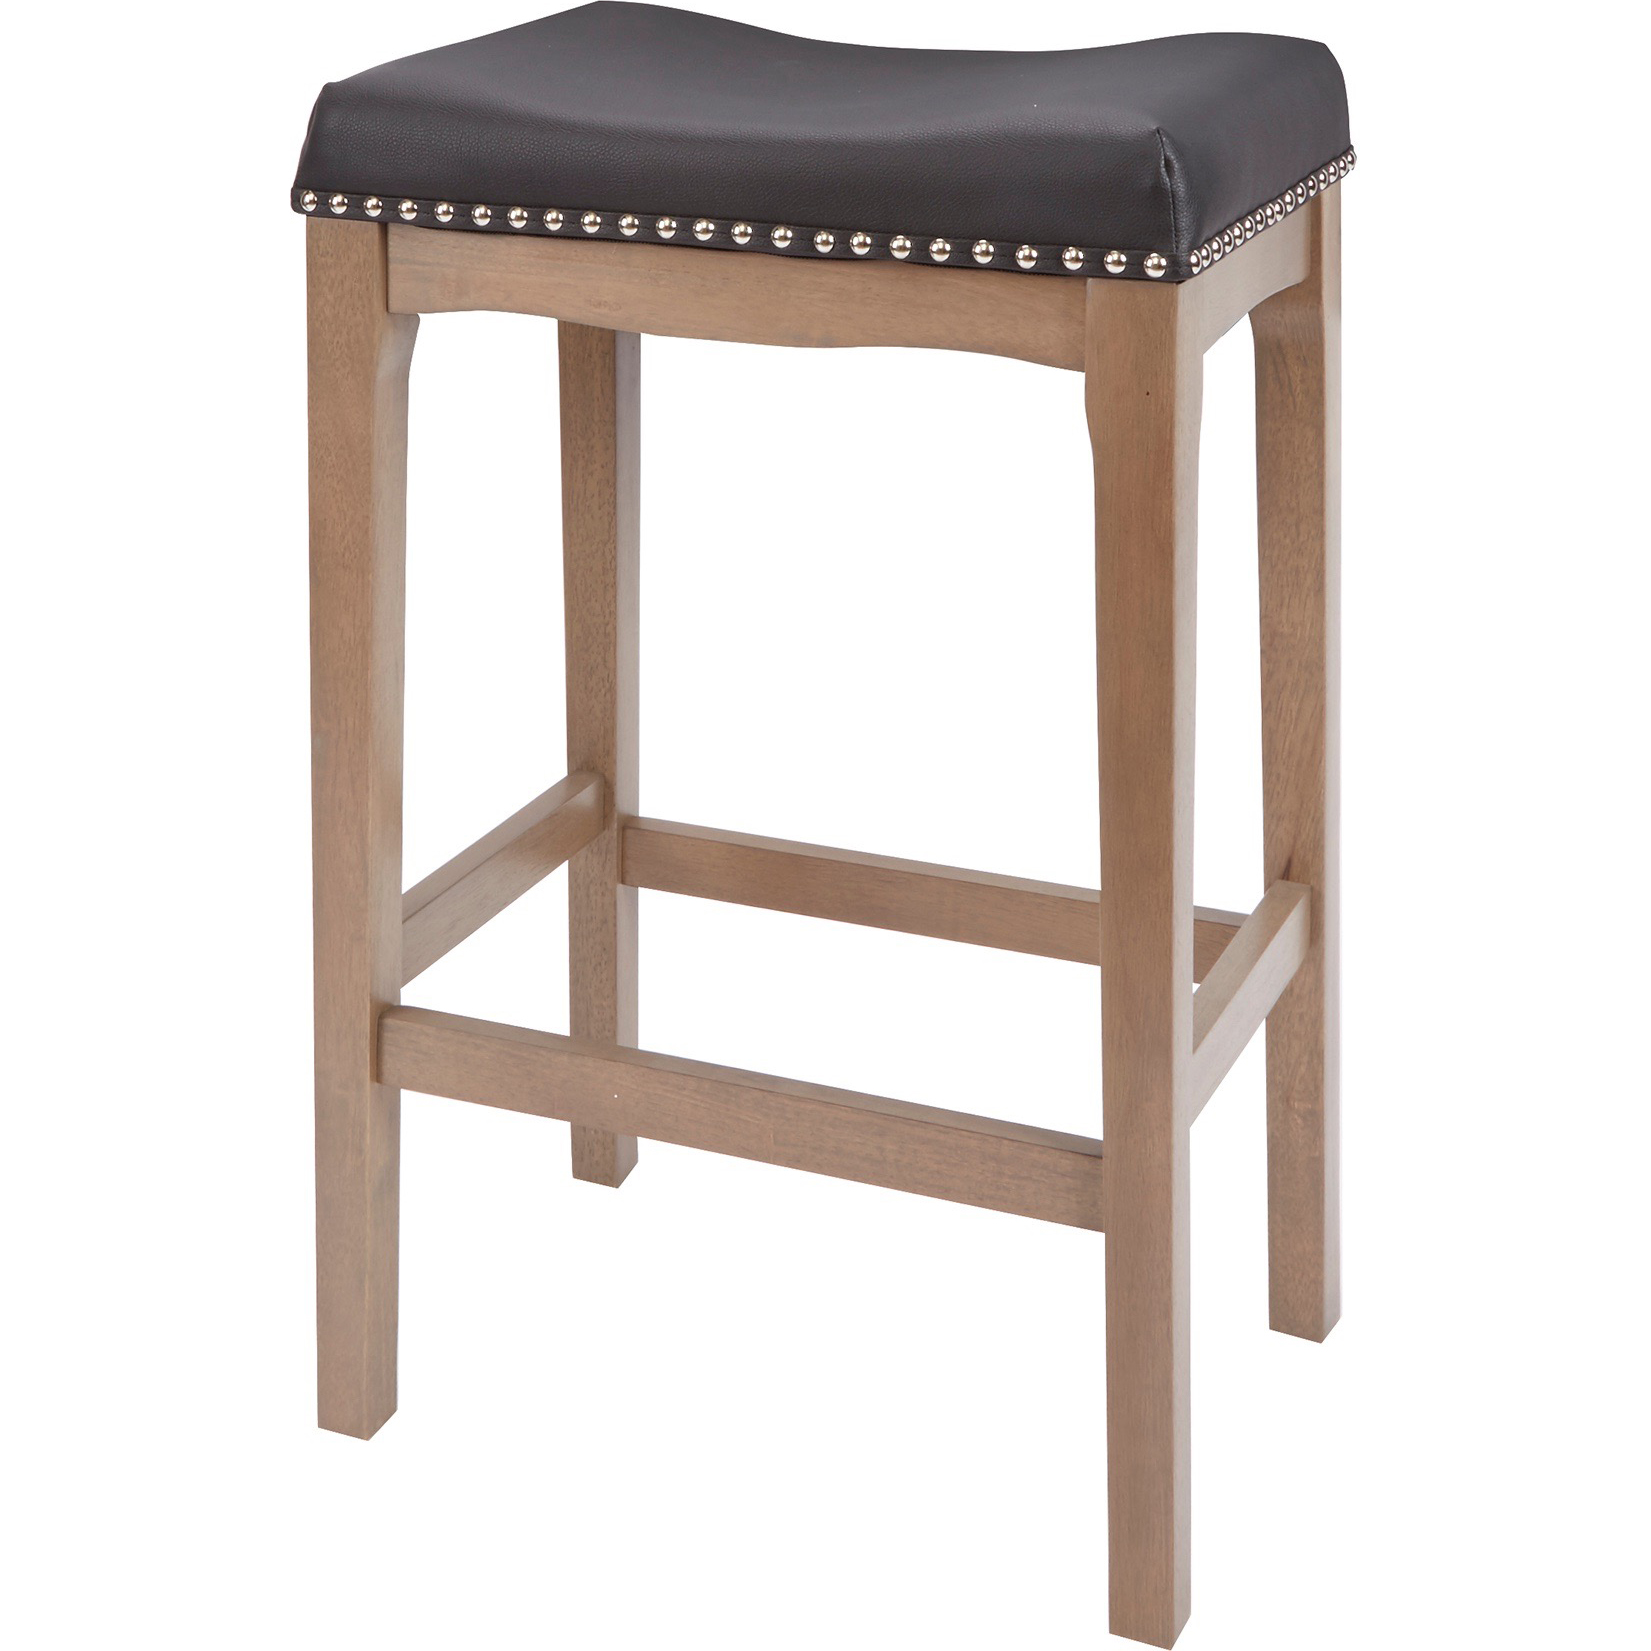 "Better Homes & Gardens Wayne 29"" Saddle Stool, Black Faux Leather with Rustic Grey Finish"